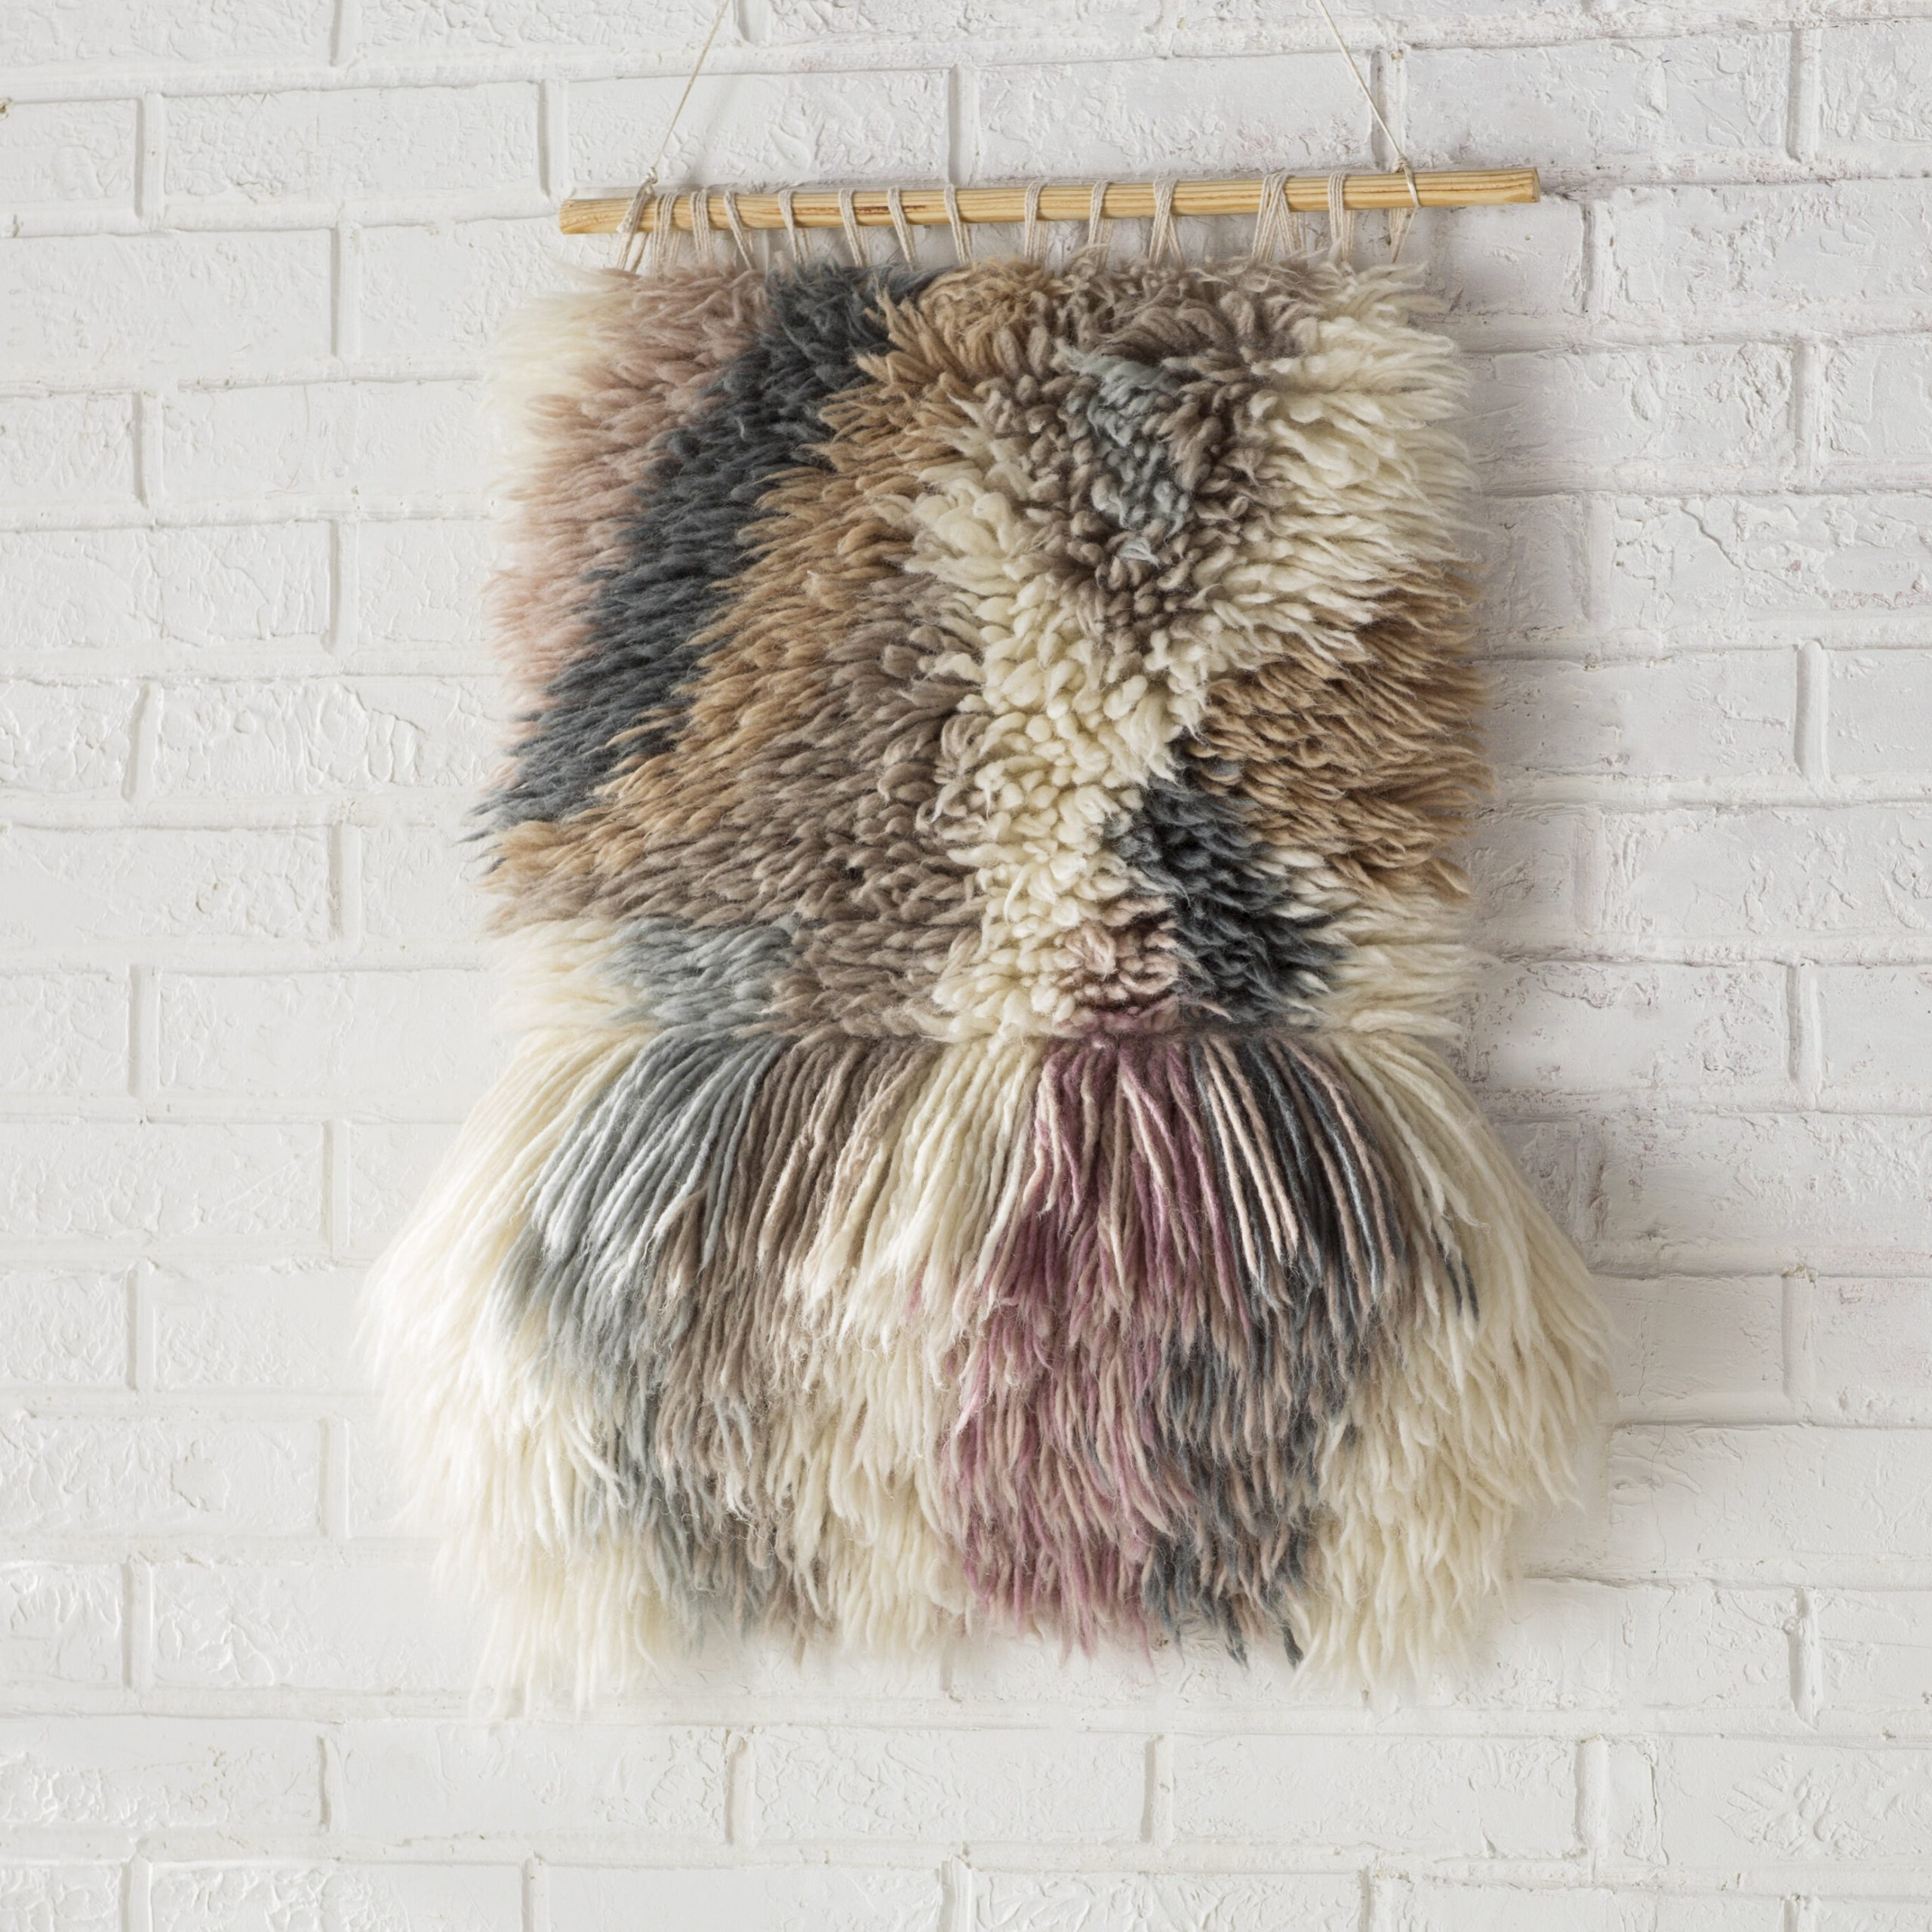 Contemporary Hand Woven Wall Hanging Within Current Hand Woven Wall Hangings (View 7 of 20)